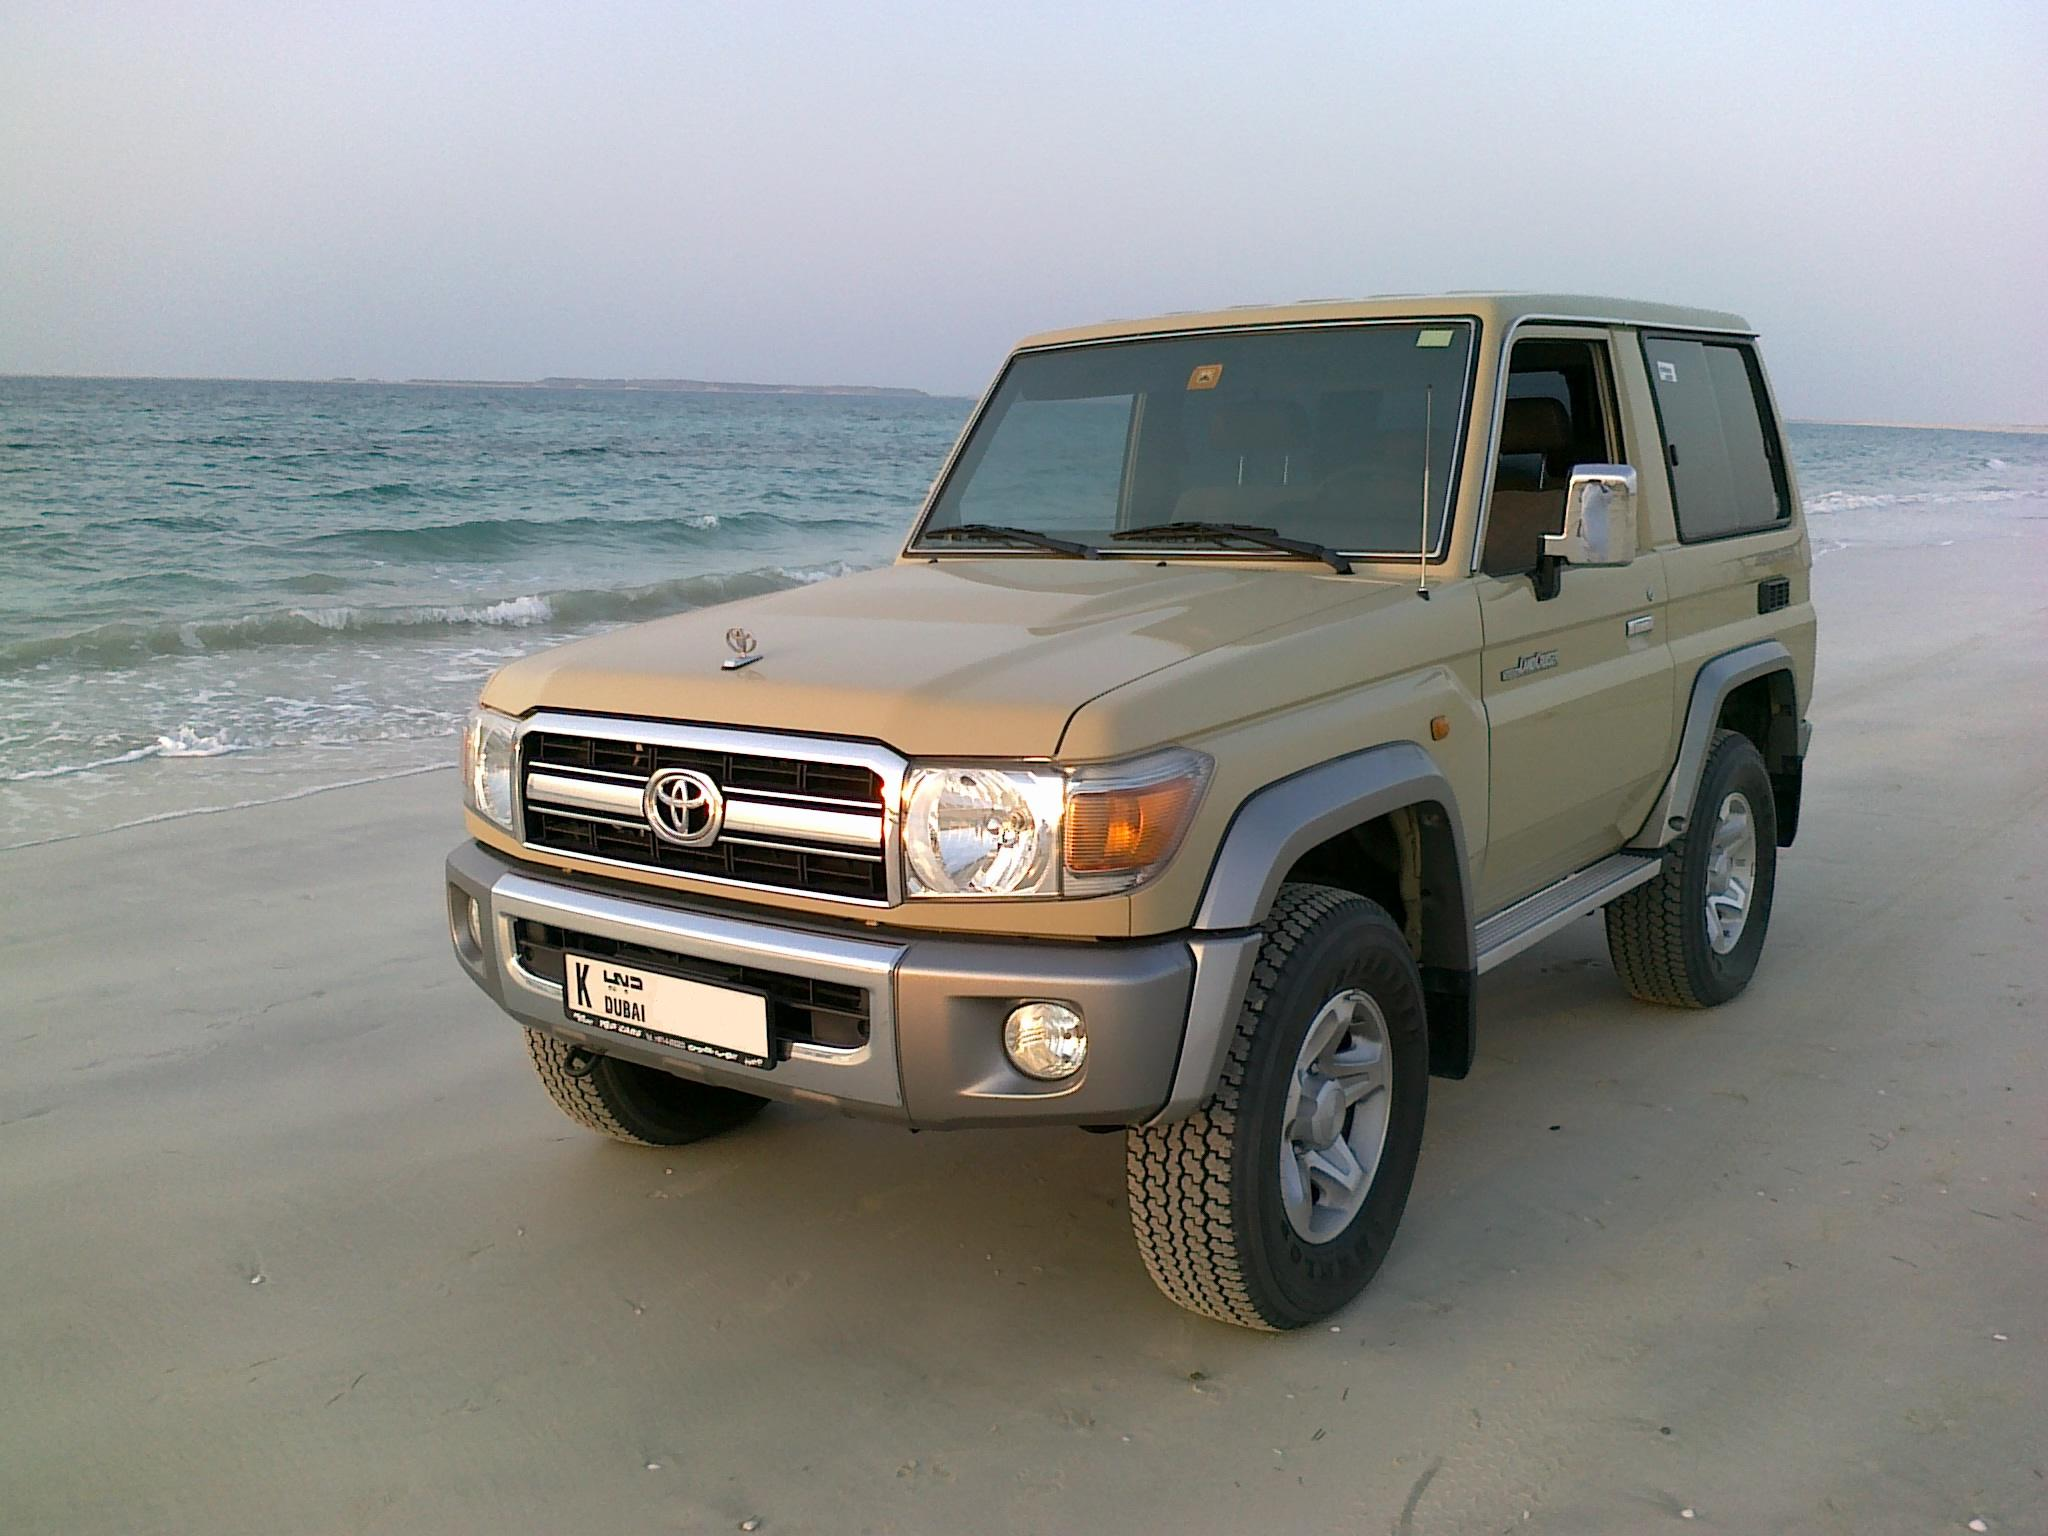 toyota land cruiser (j7) 1990 pictures #6